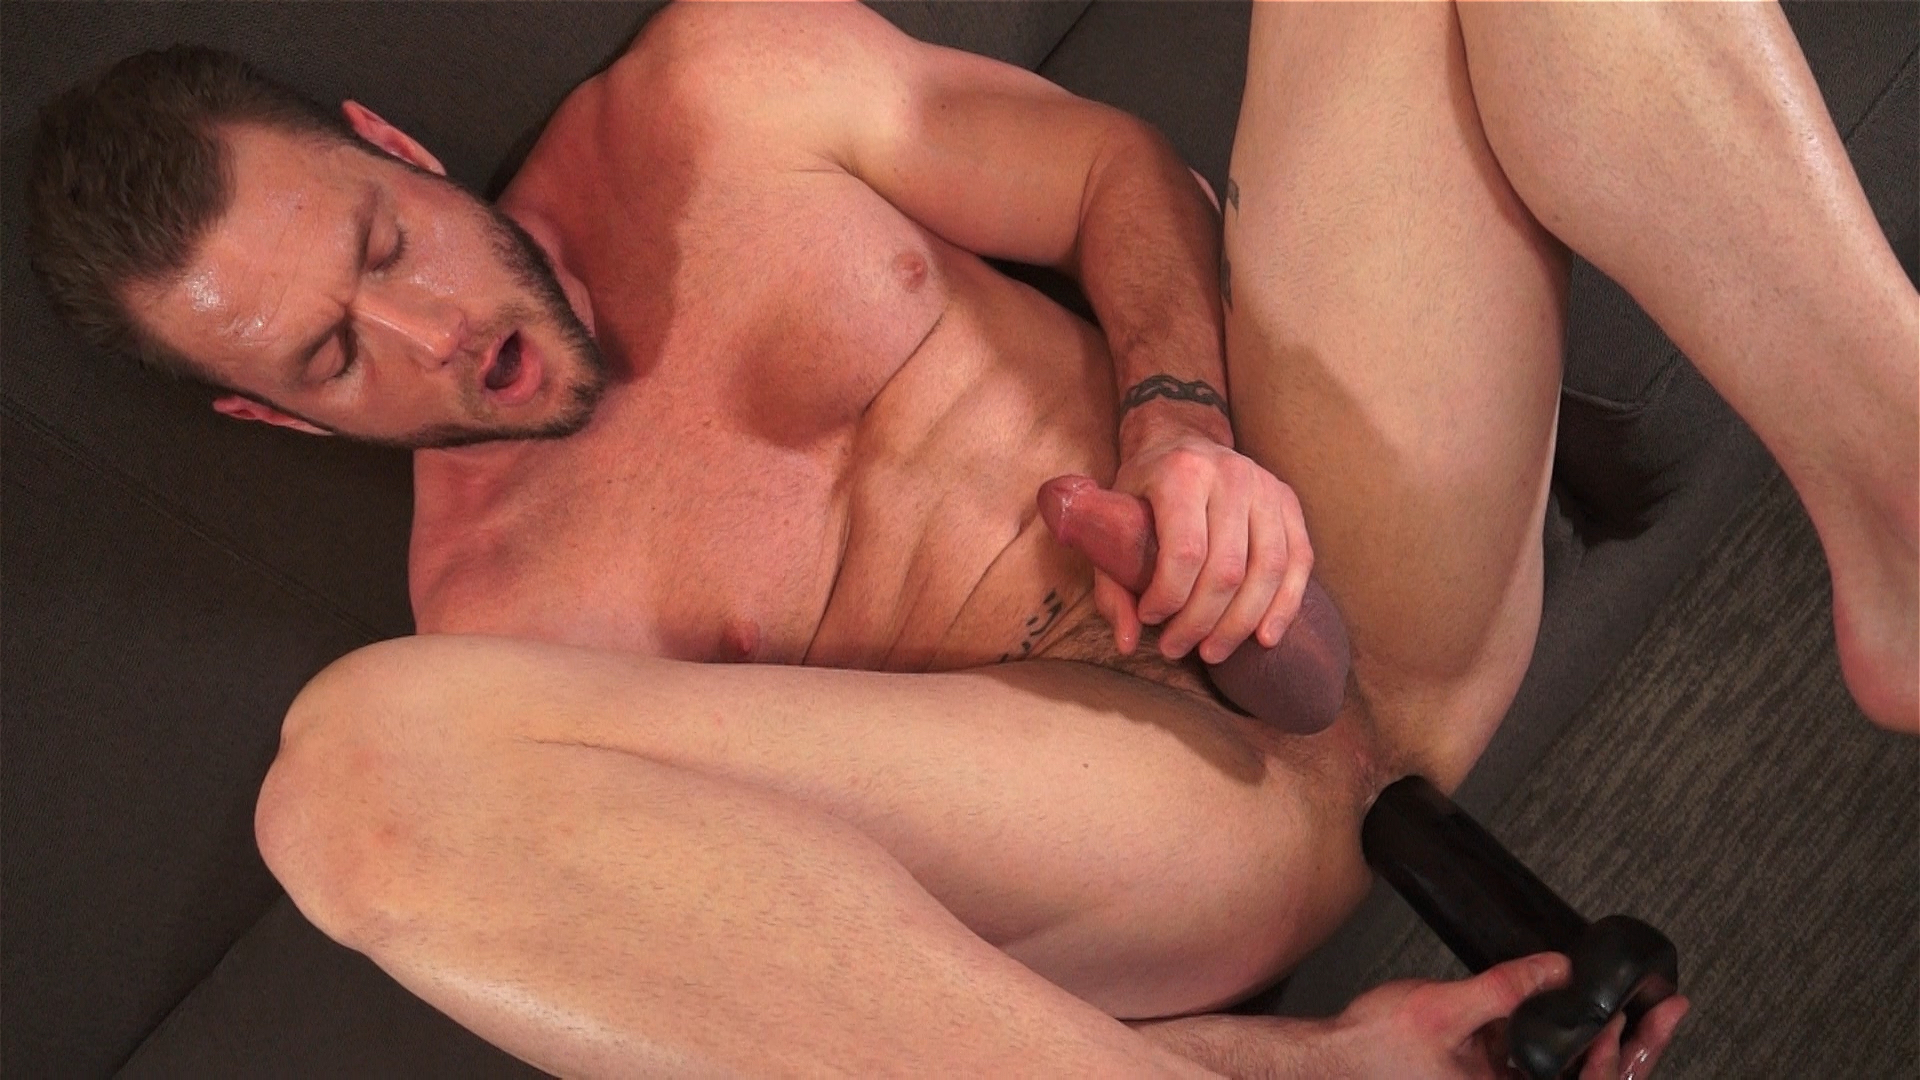 Ace Heragay Porn ace era - solo - gay - scene 1 from meat-holes part 2: meat the